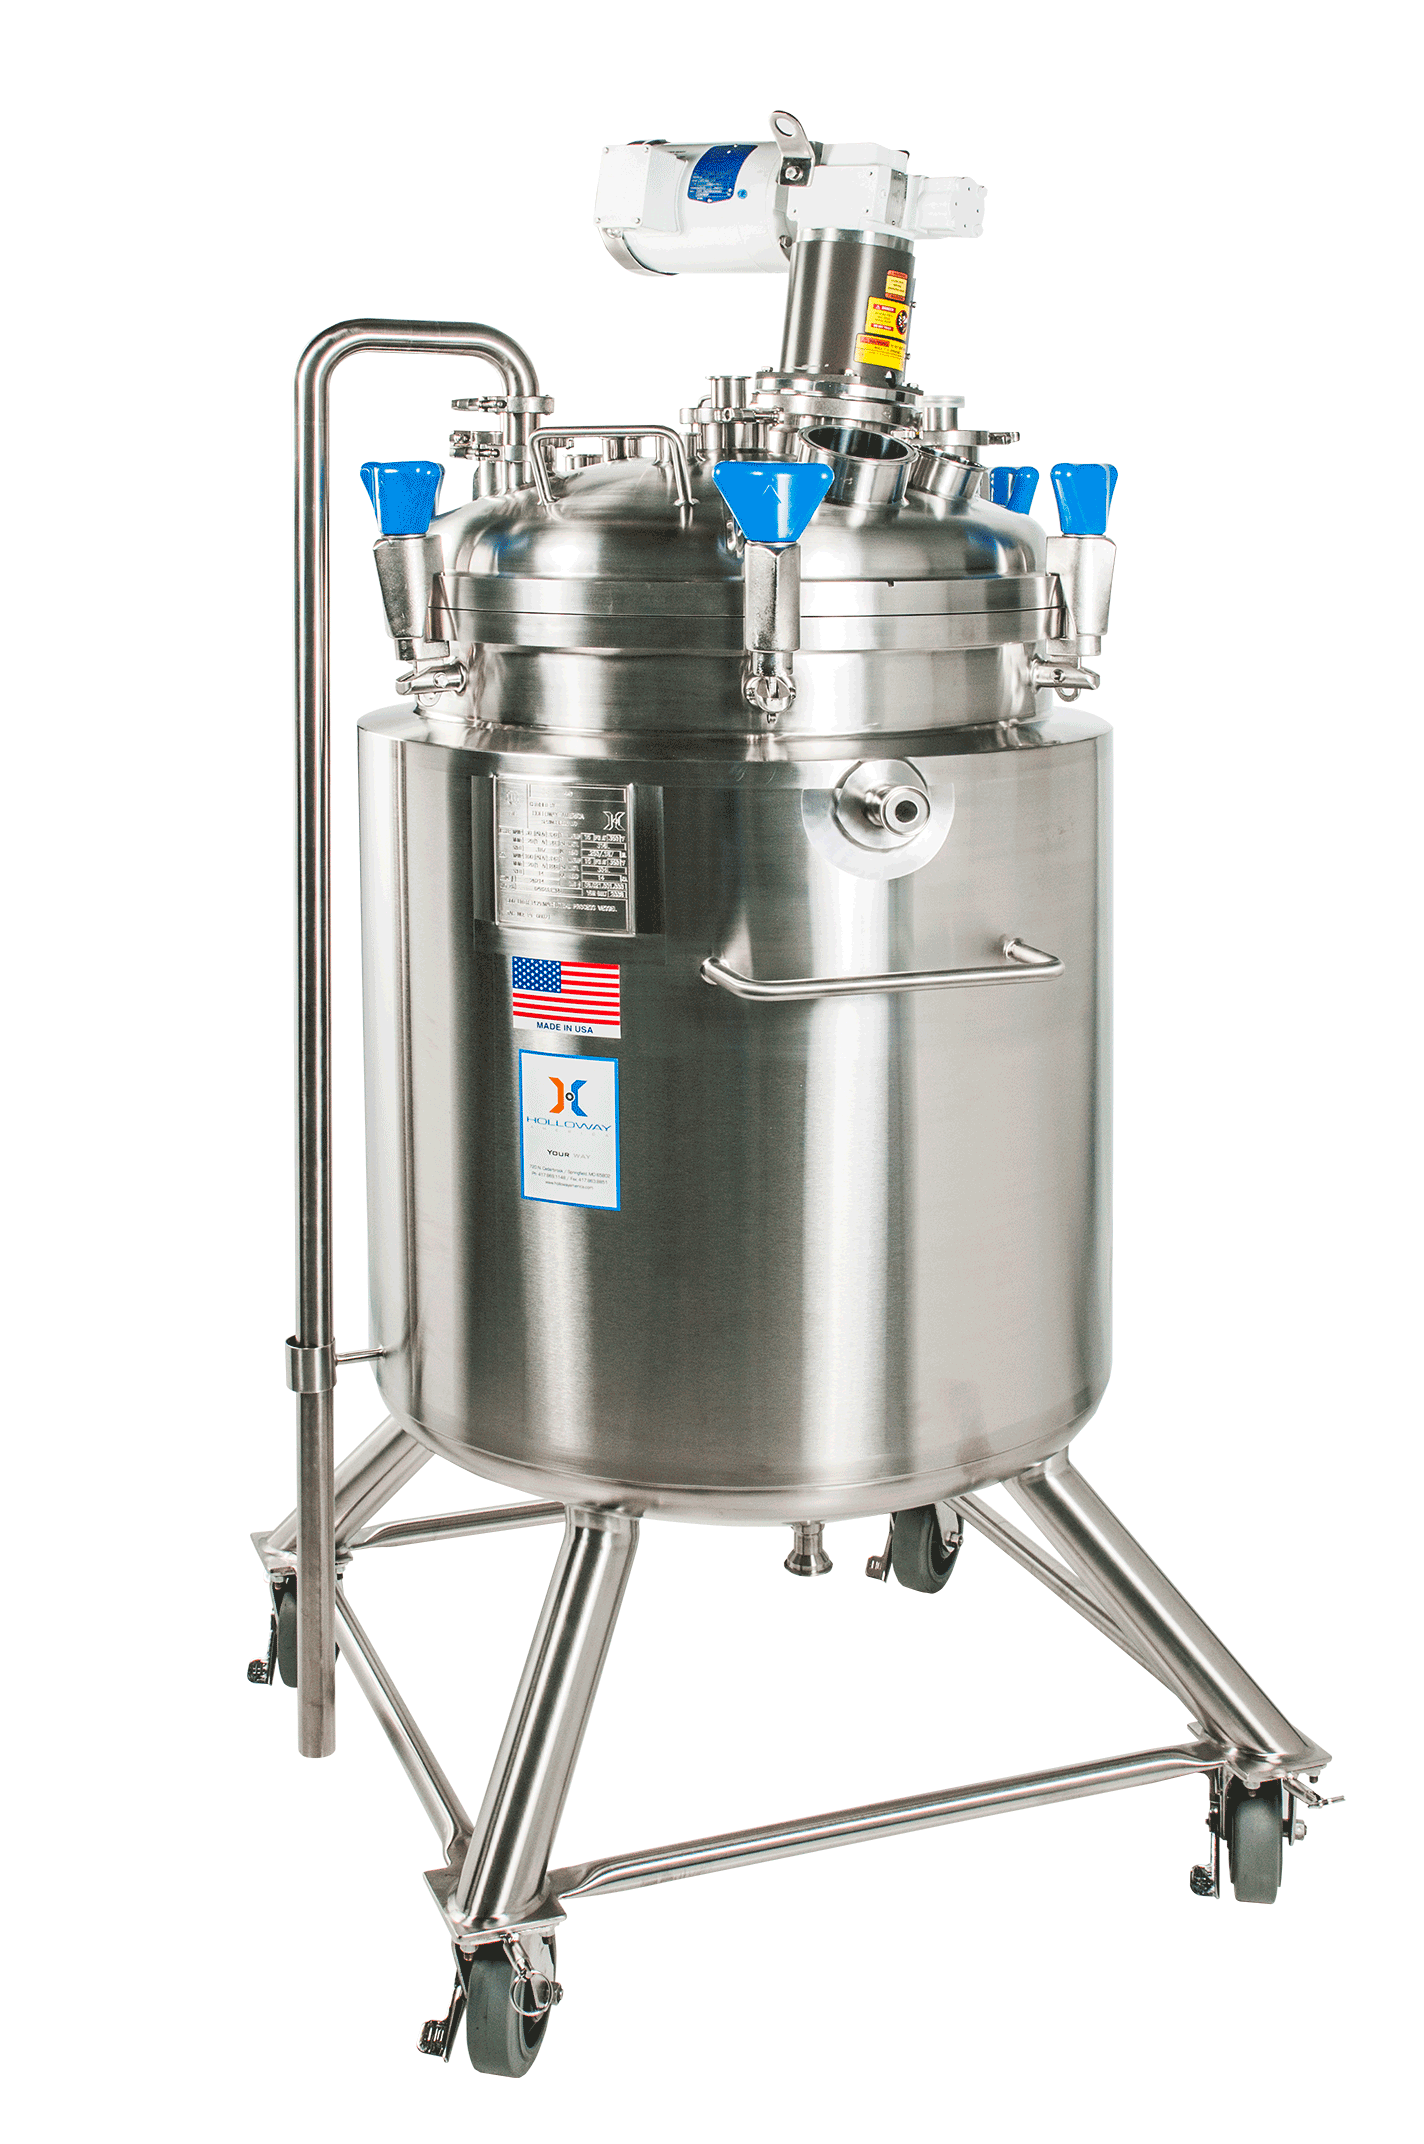 A mix tank with wheels, like this, is a portable mixing tank or vessel.